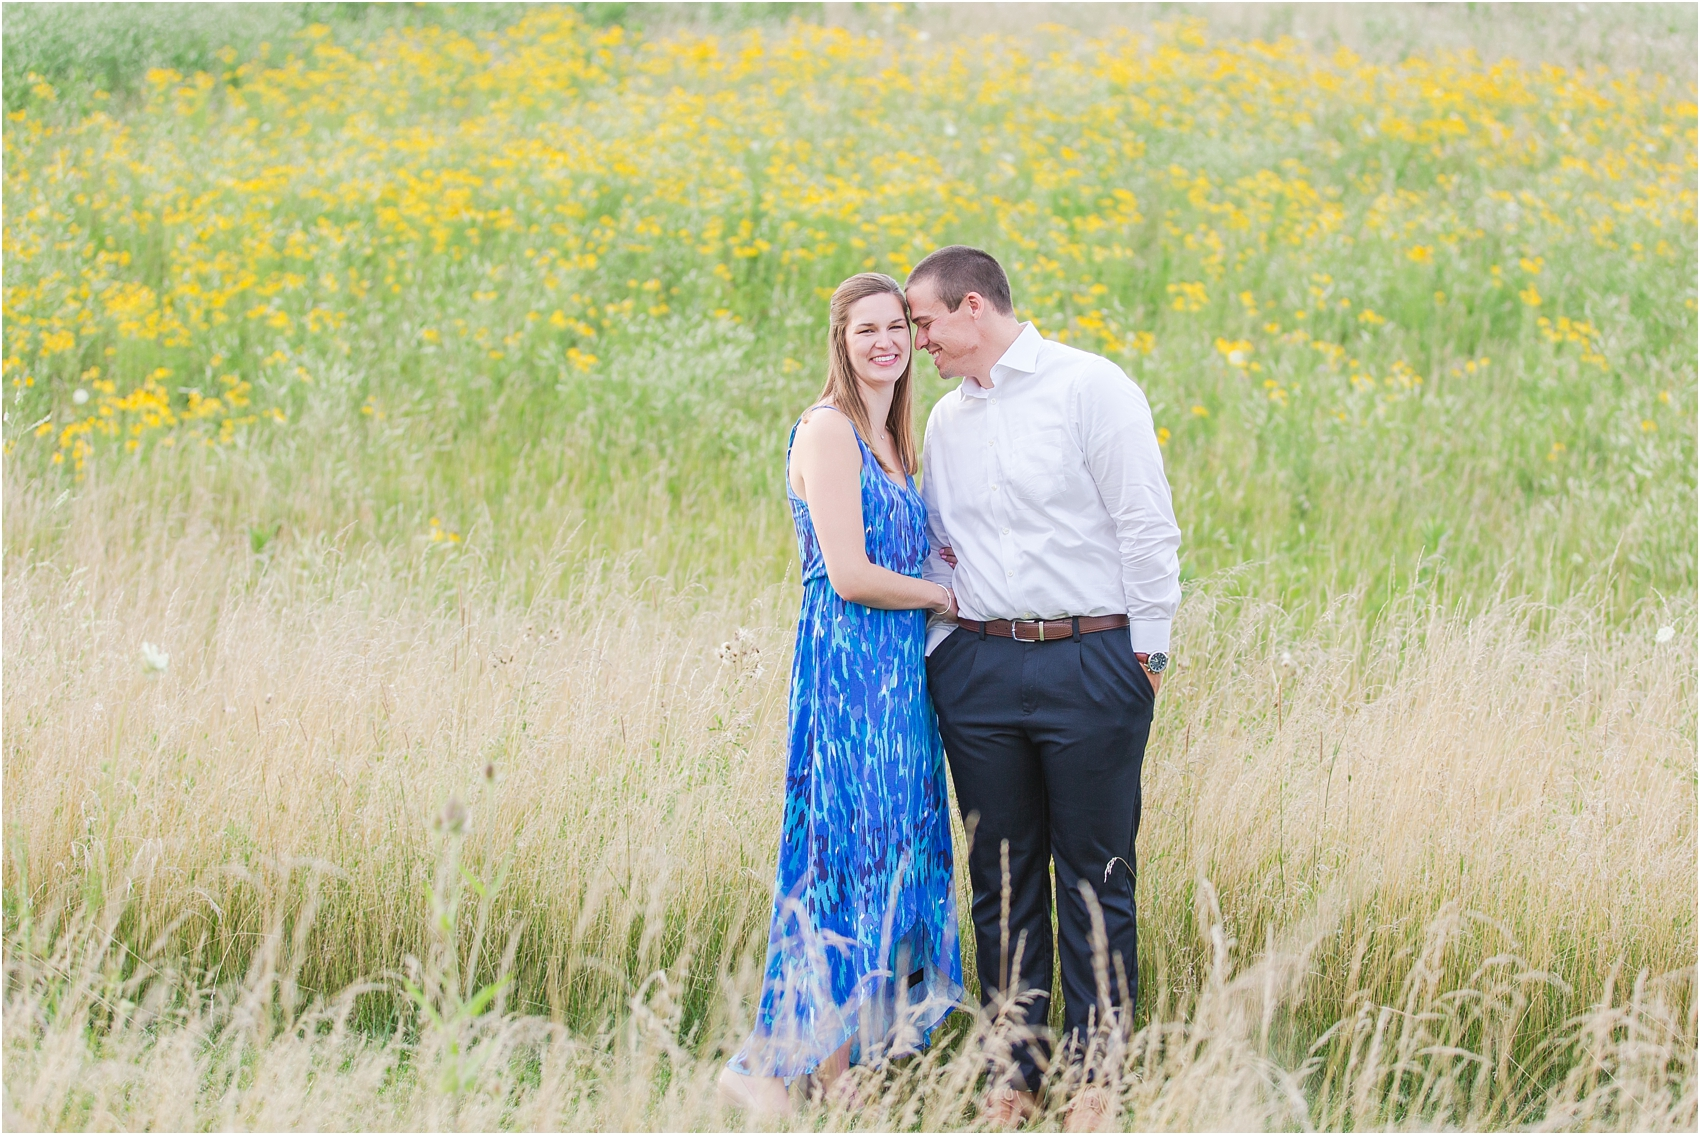 light-hearted-sunset-engagement-photos-at-the-beach-in-oregon-oh-by-courtney-carolyn-photography_0019.jpg